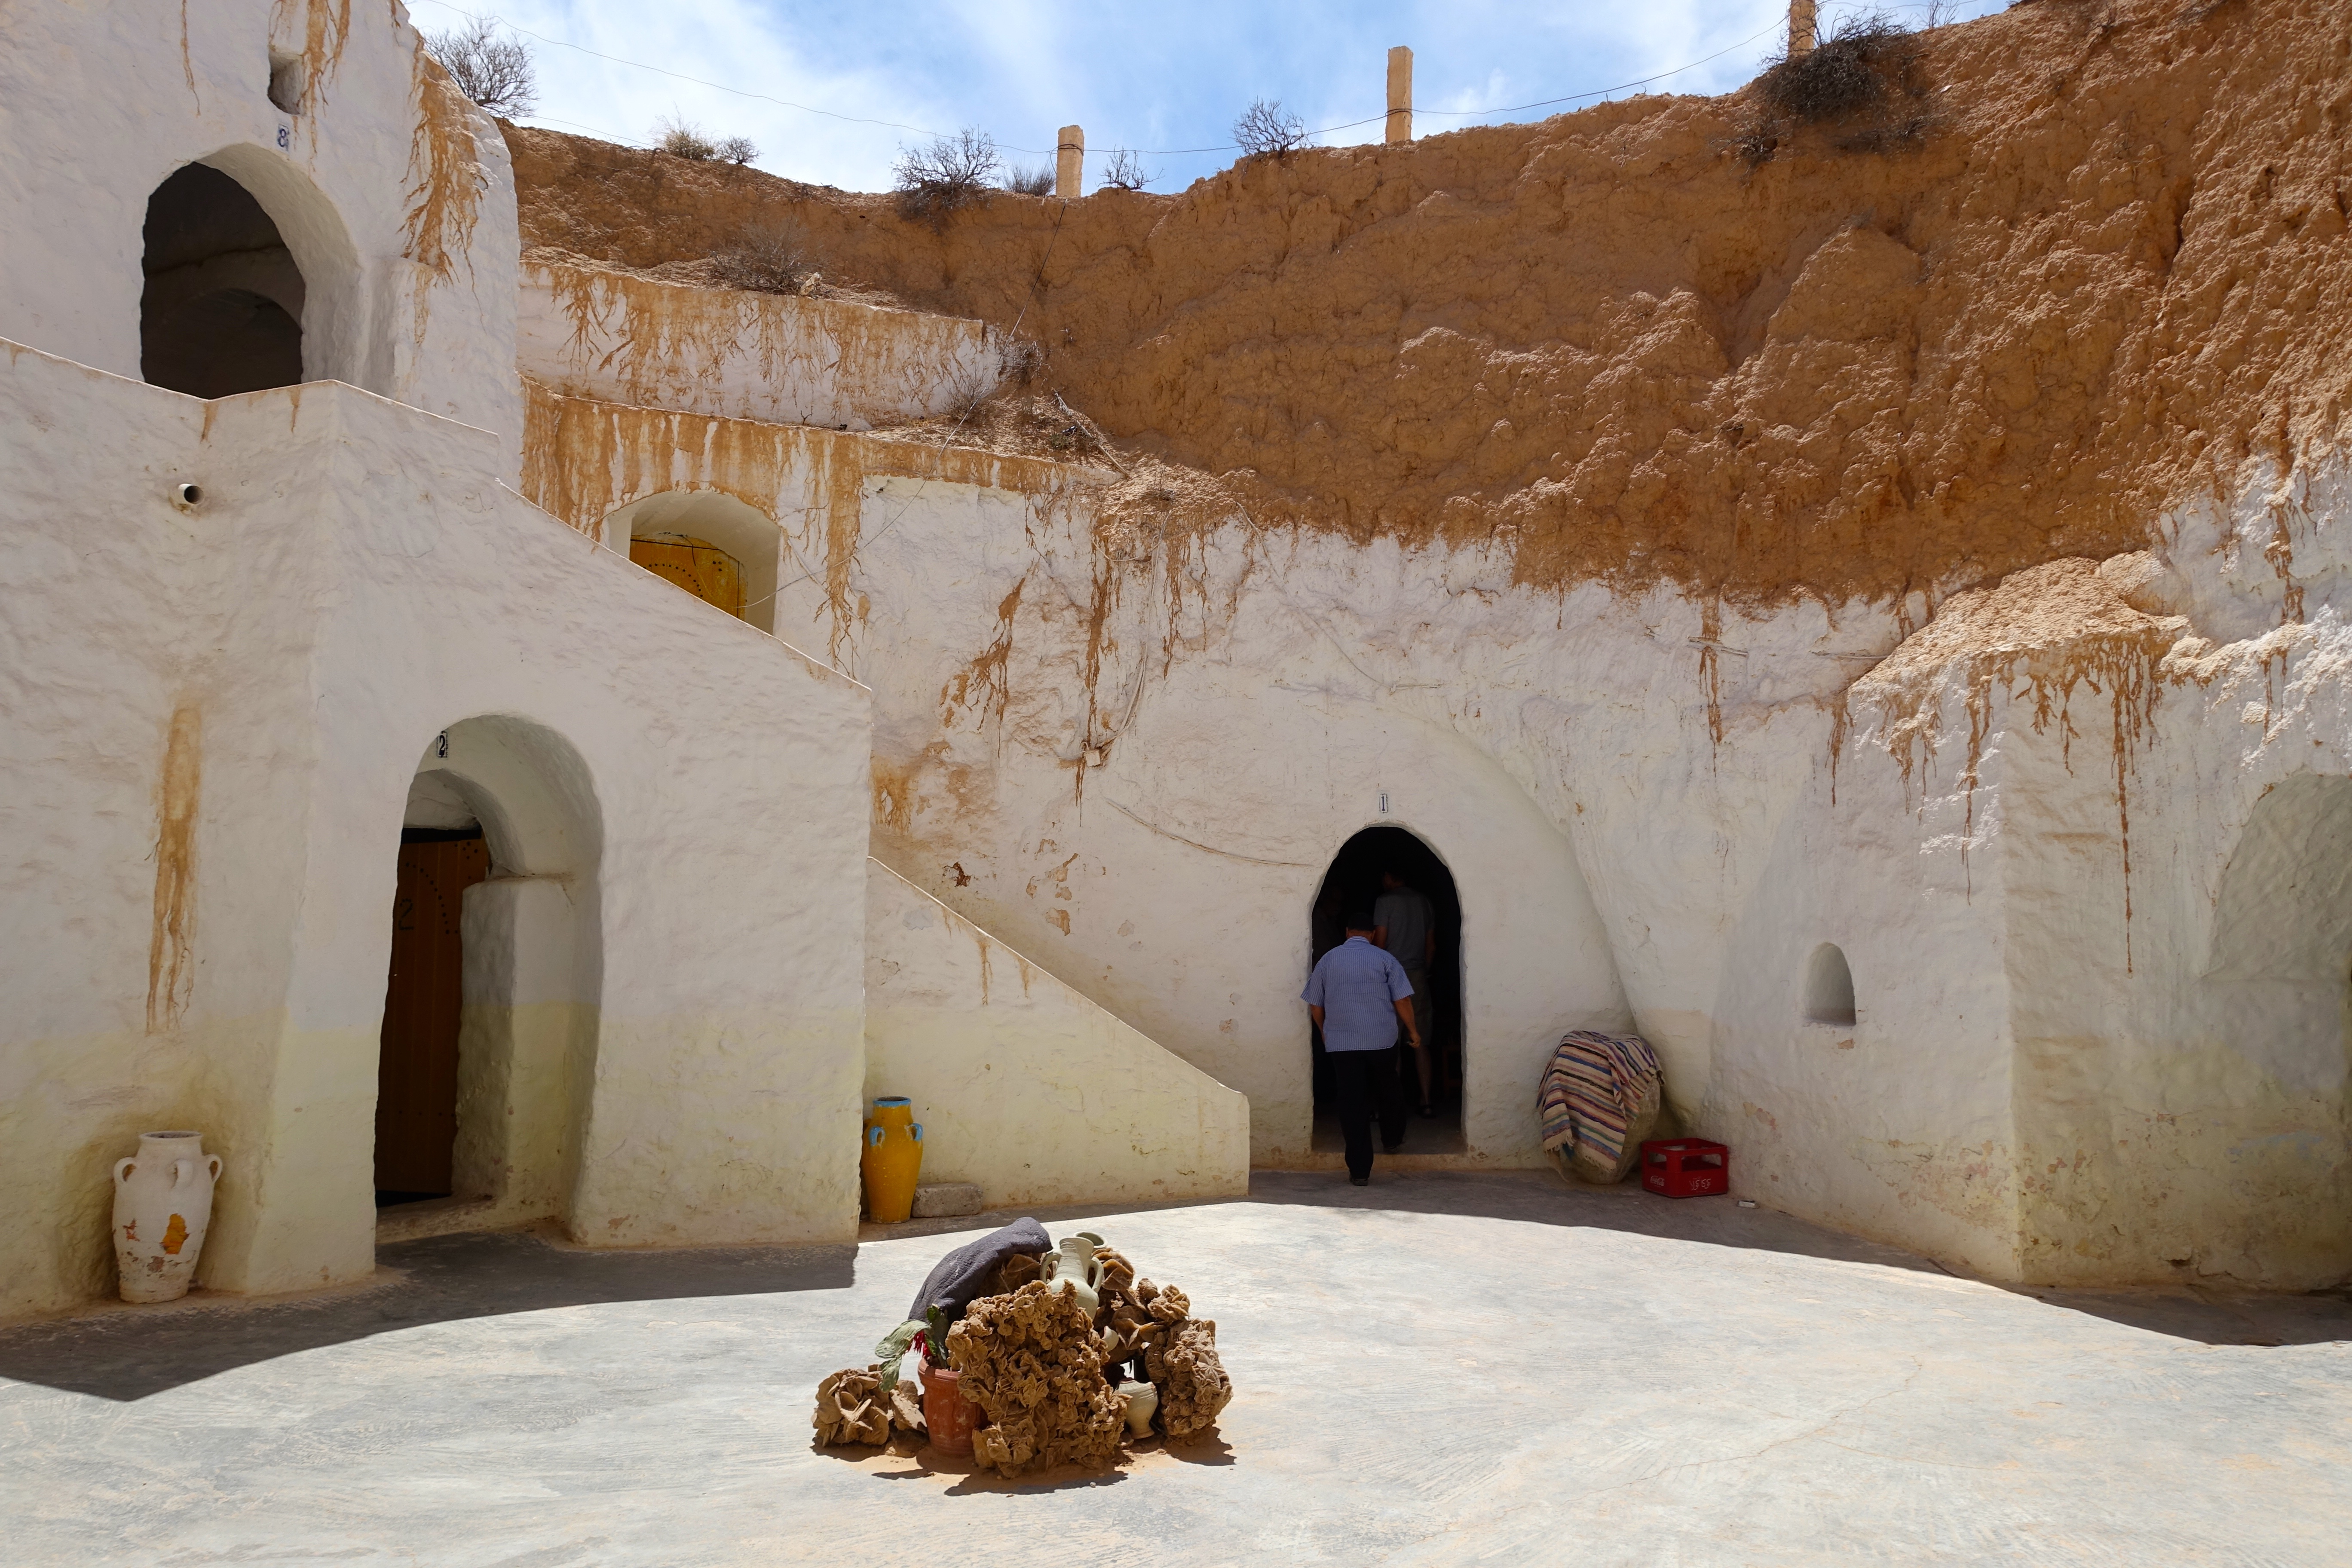 Homes built in the rocks in tunisia star wars movie site for Cost to build a house in little rock